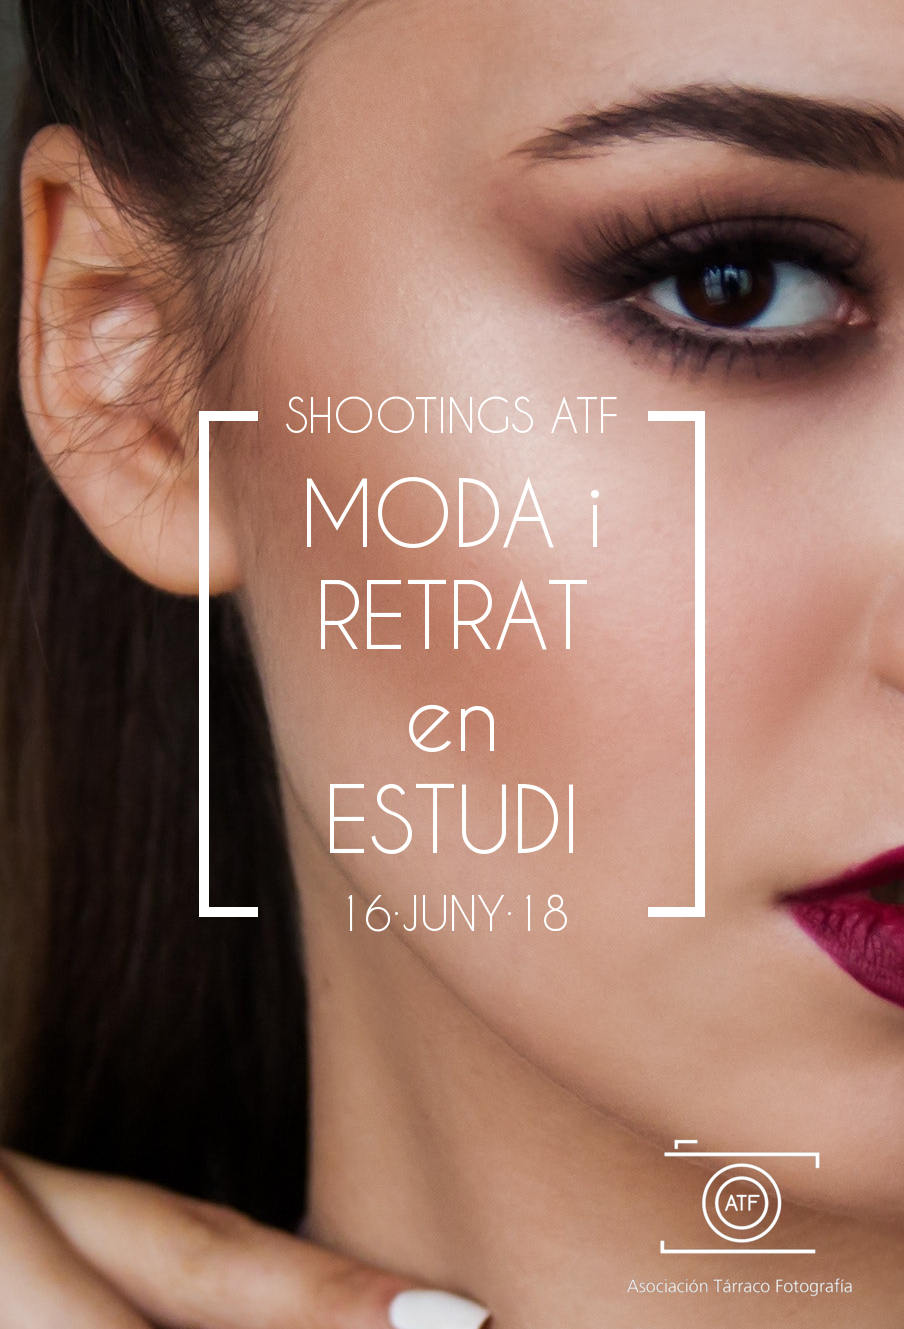 Shooting Moda i retrat